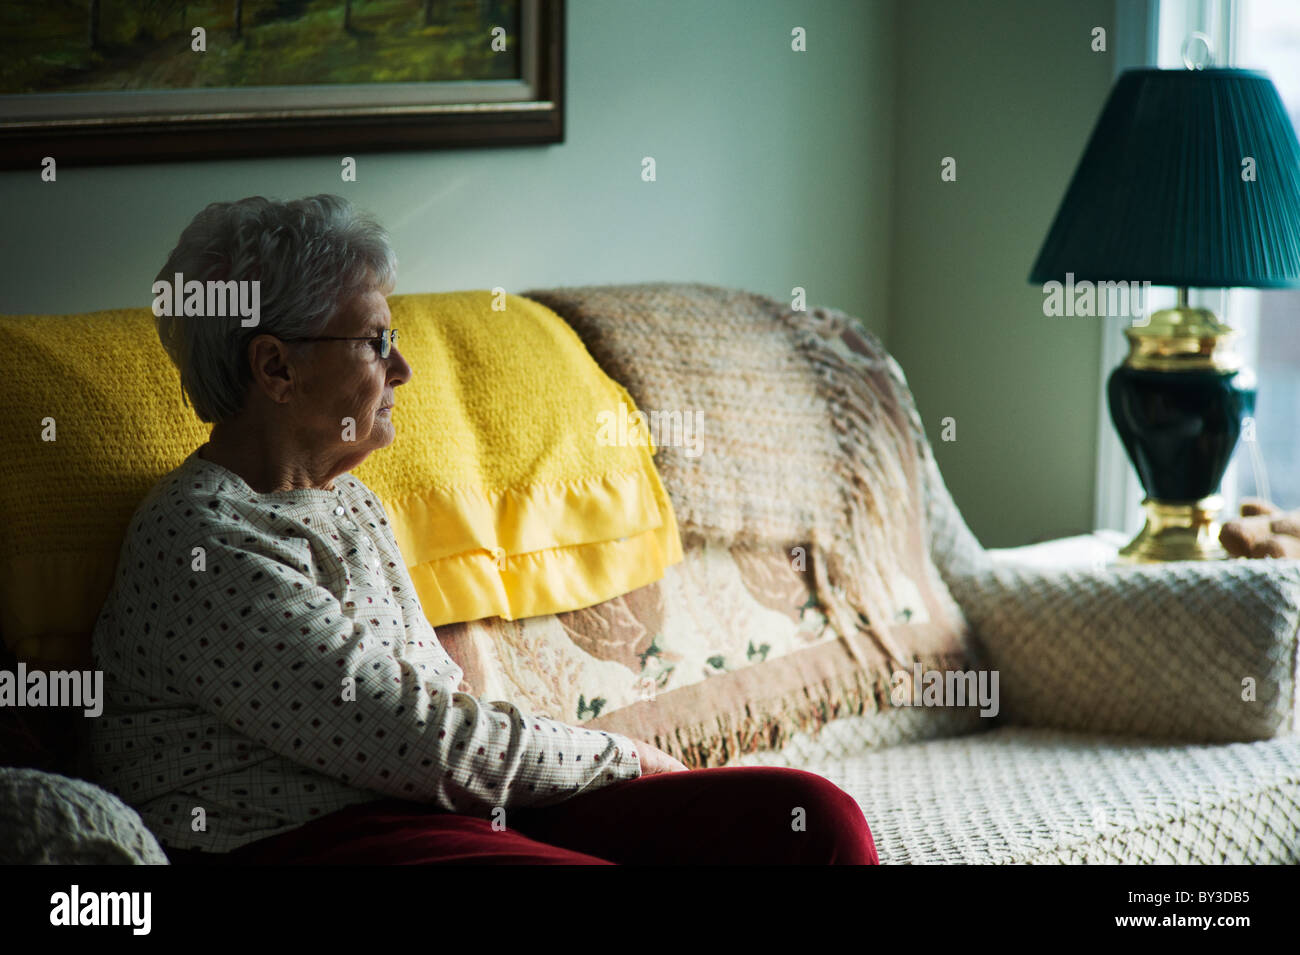 Old Woman Sits Alone On Couch Stock Photo 33882441 Alamy